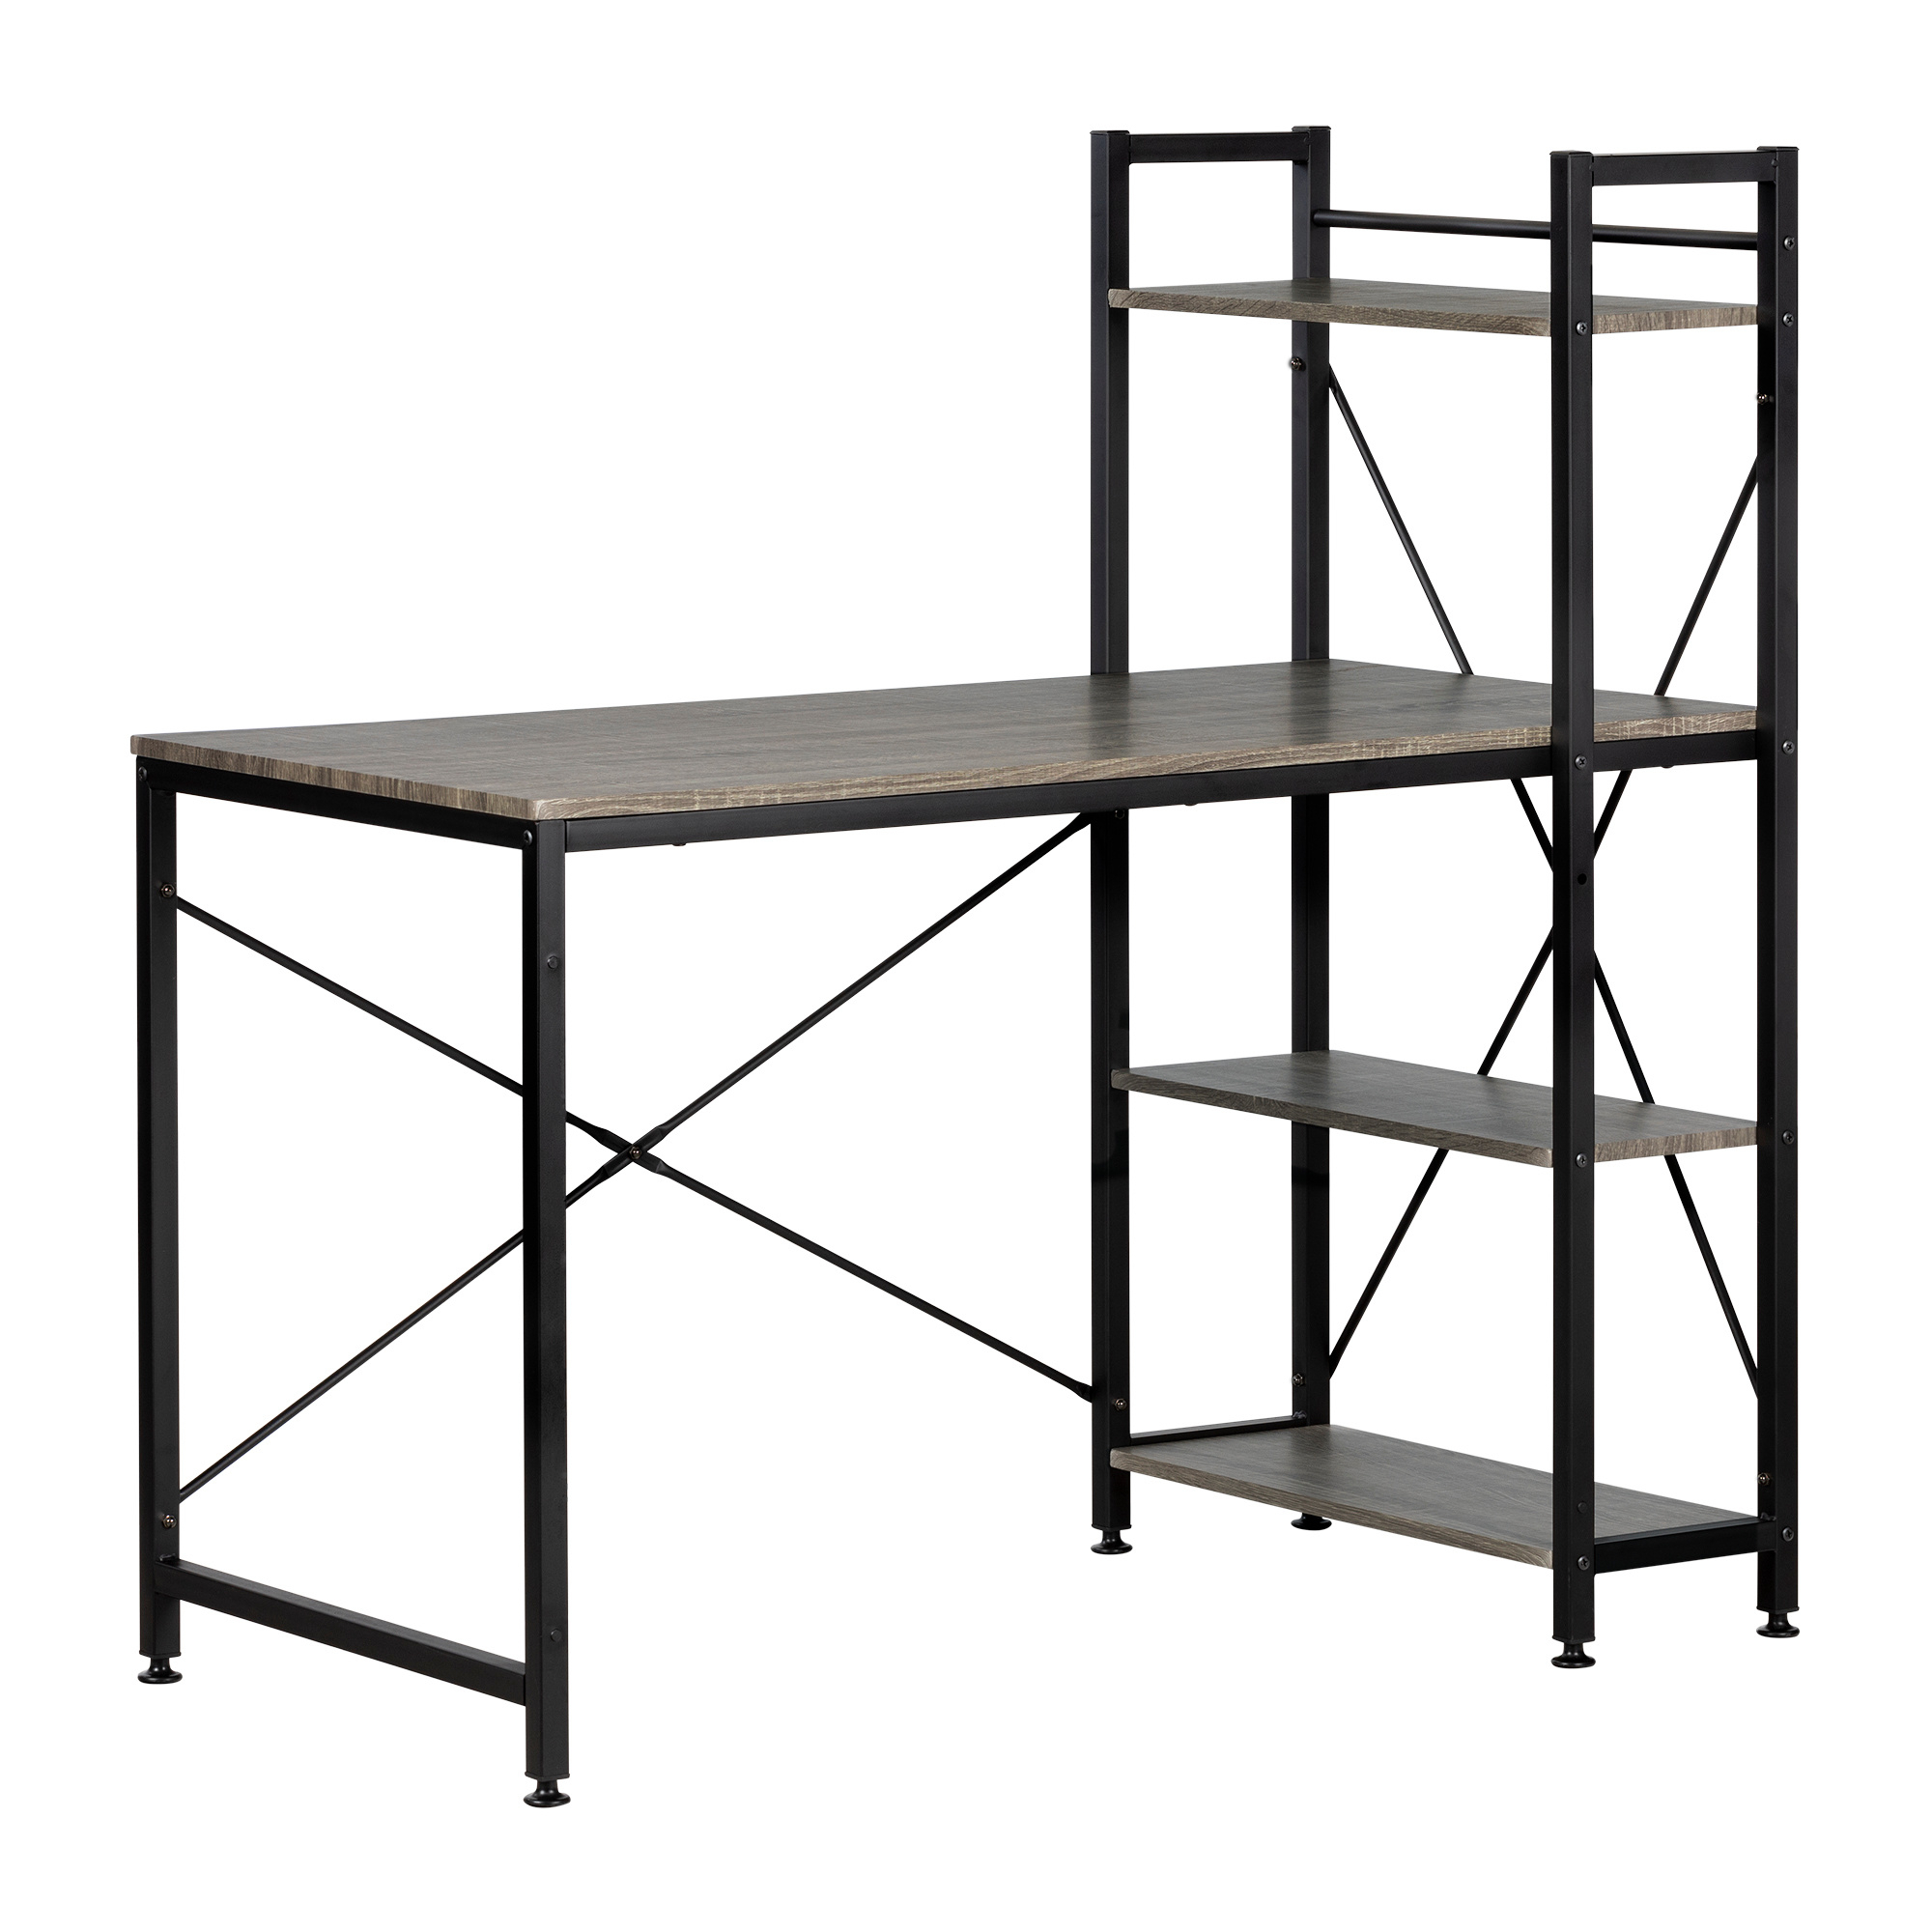 Evane Industrial Desk With Bookcase, Oak Camel – M2go Throughout South Shore Evane Tv Stands With Doors In Oak Camel (View 17 of 20)